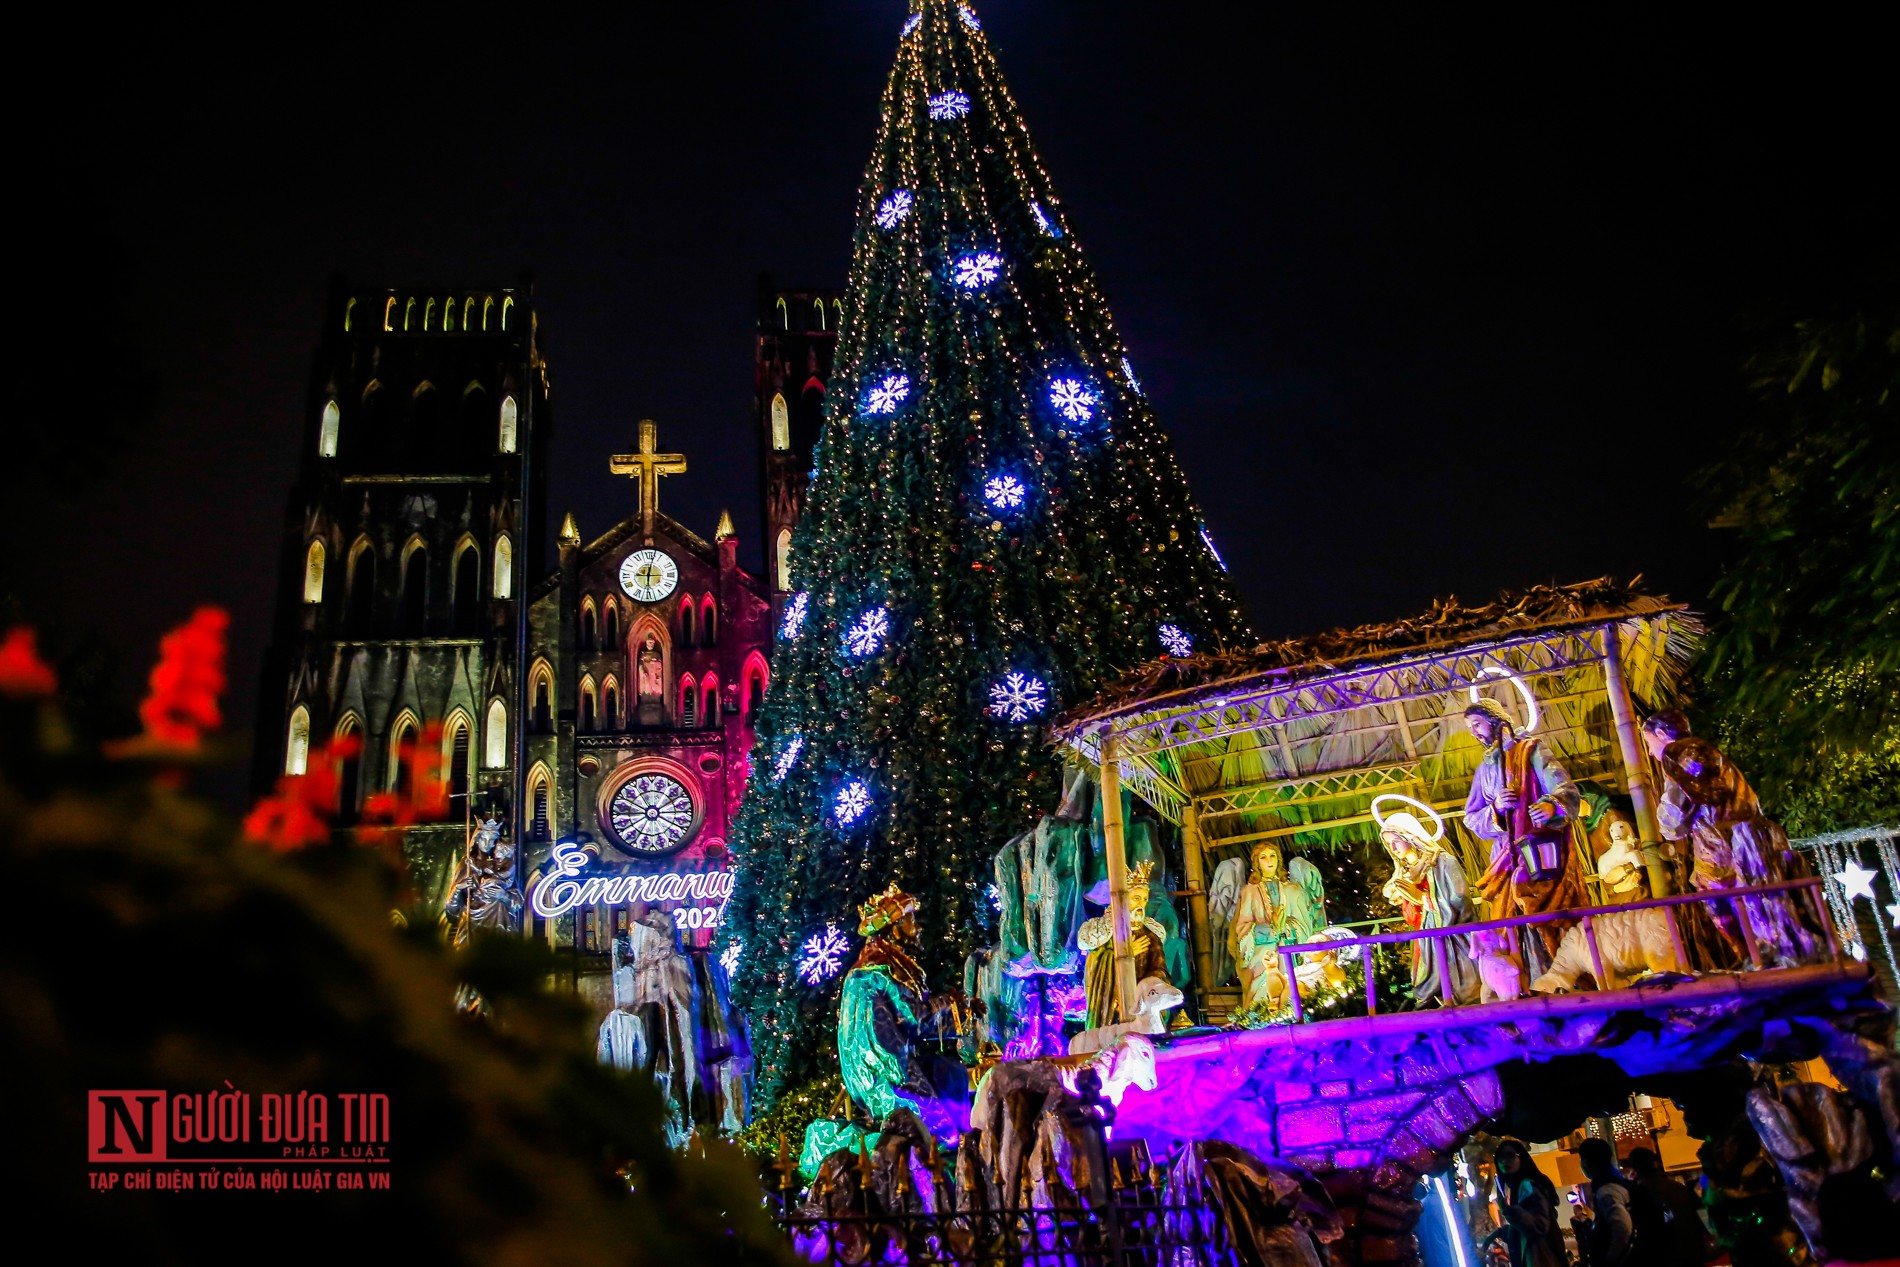 In photos: Churches in Hanoi splendidly decorated for Christmas